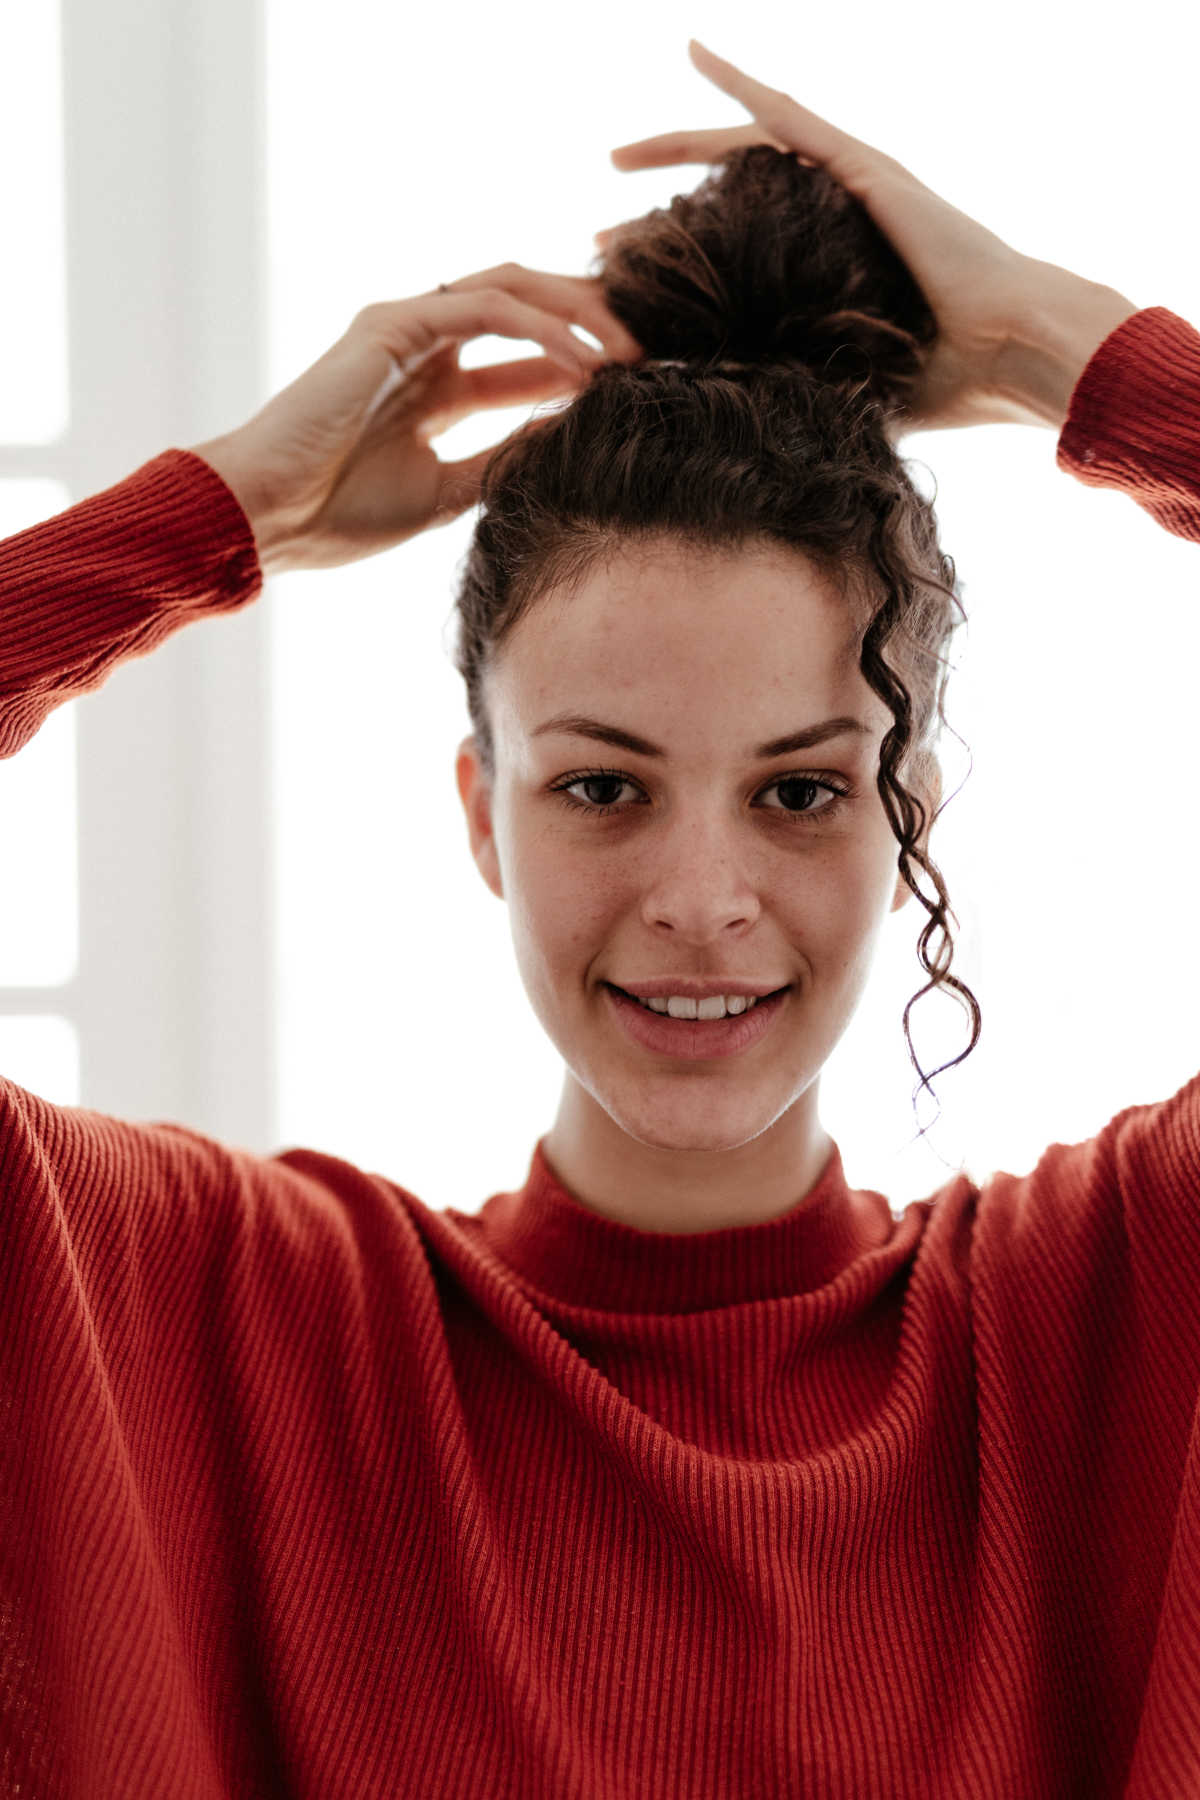 Young woman in red sweater smiles while adjusting her hair bun